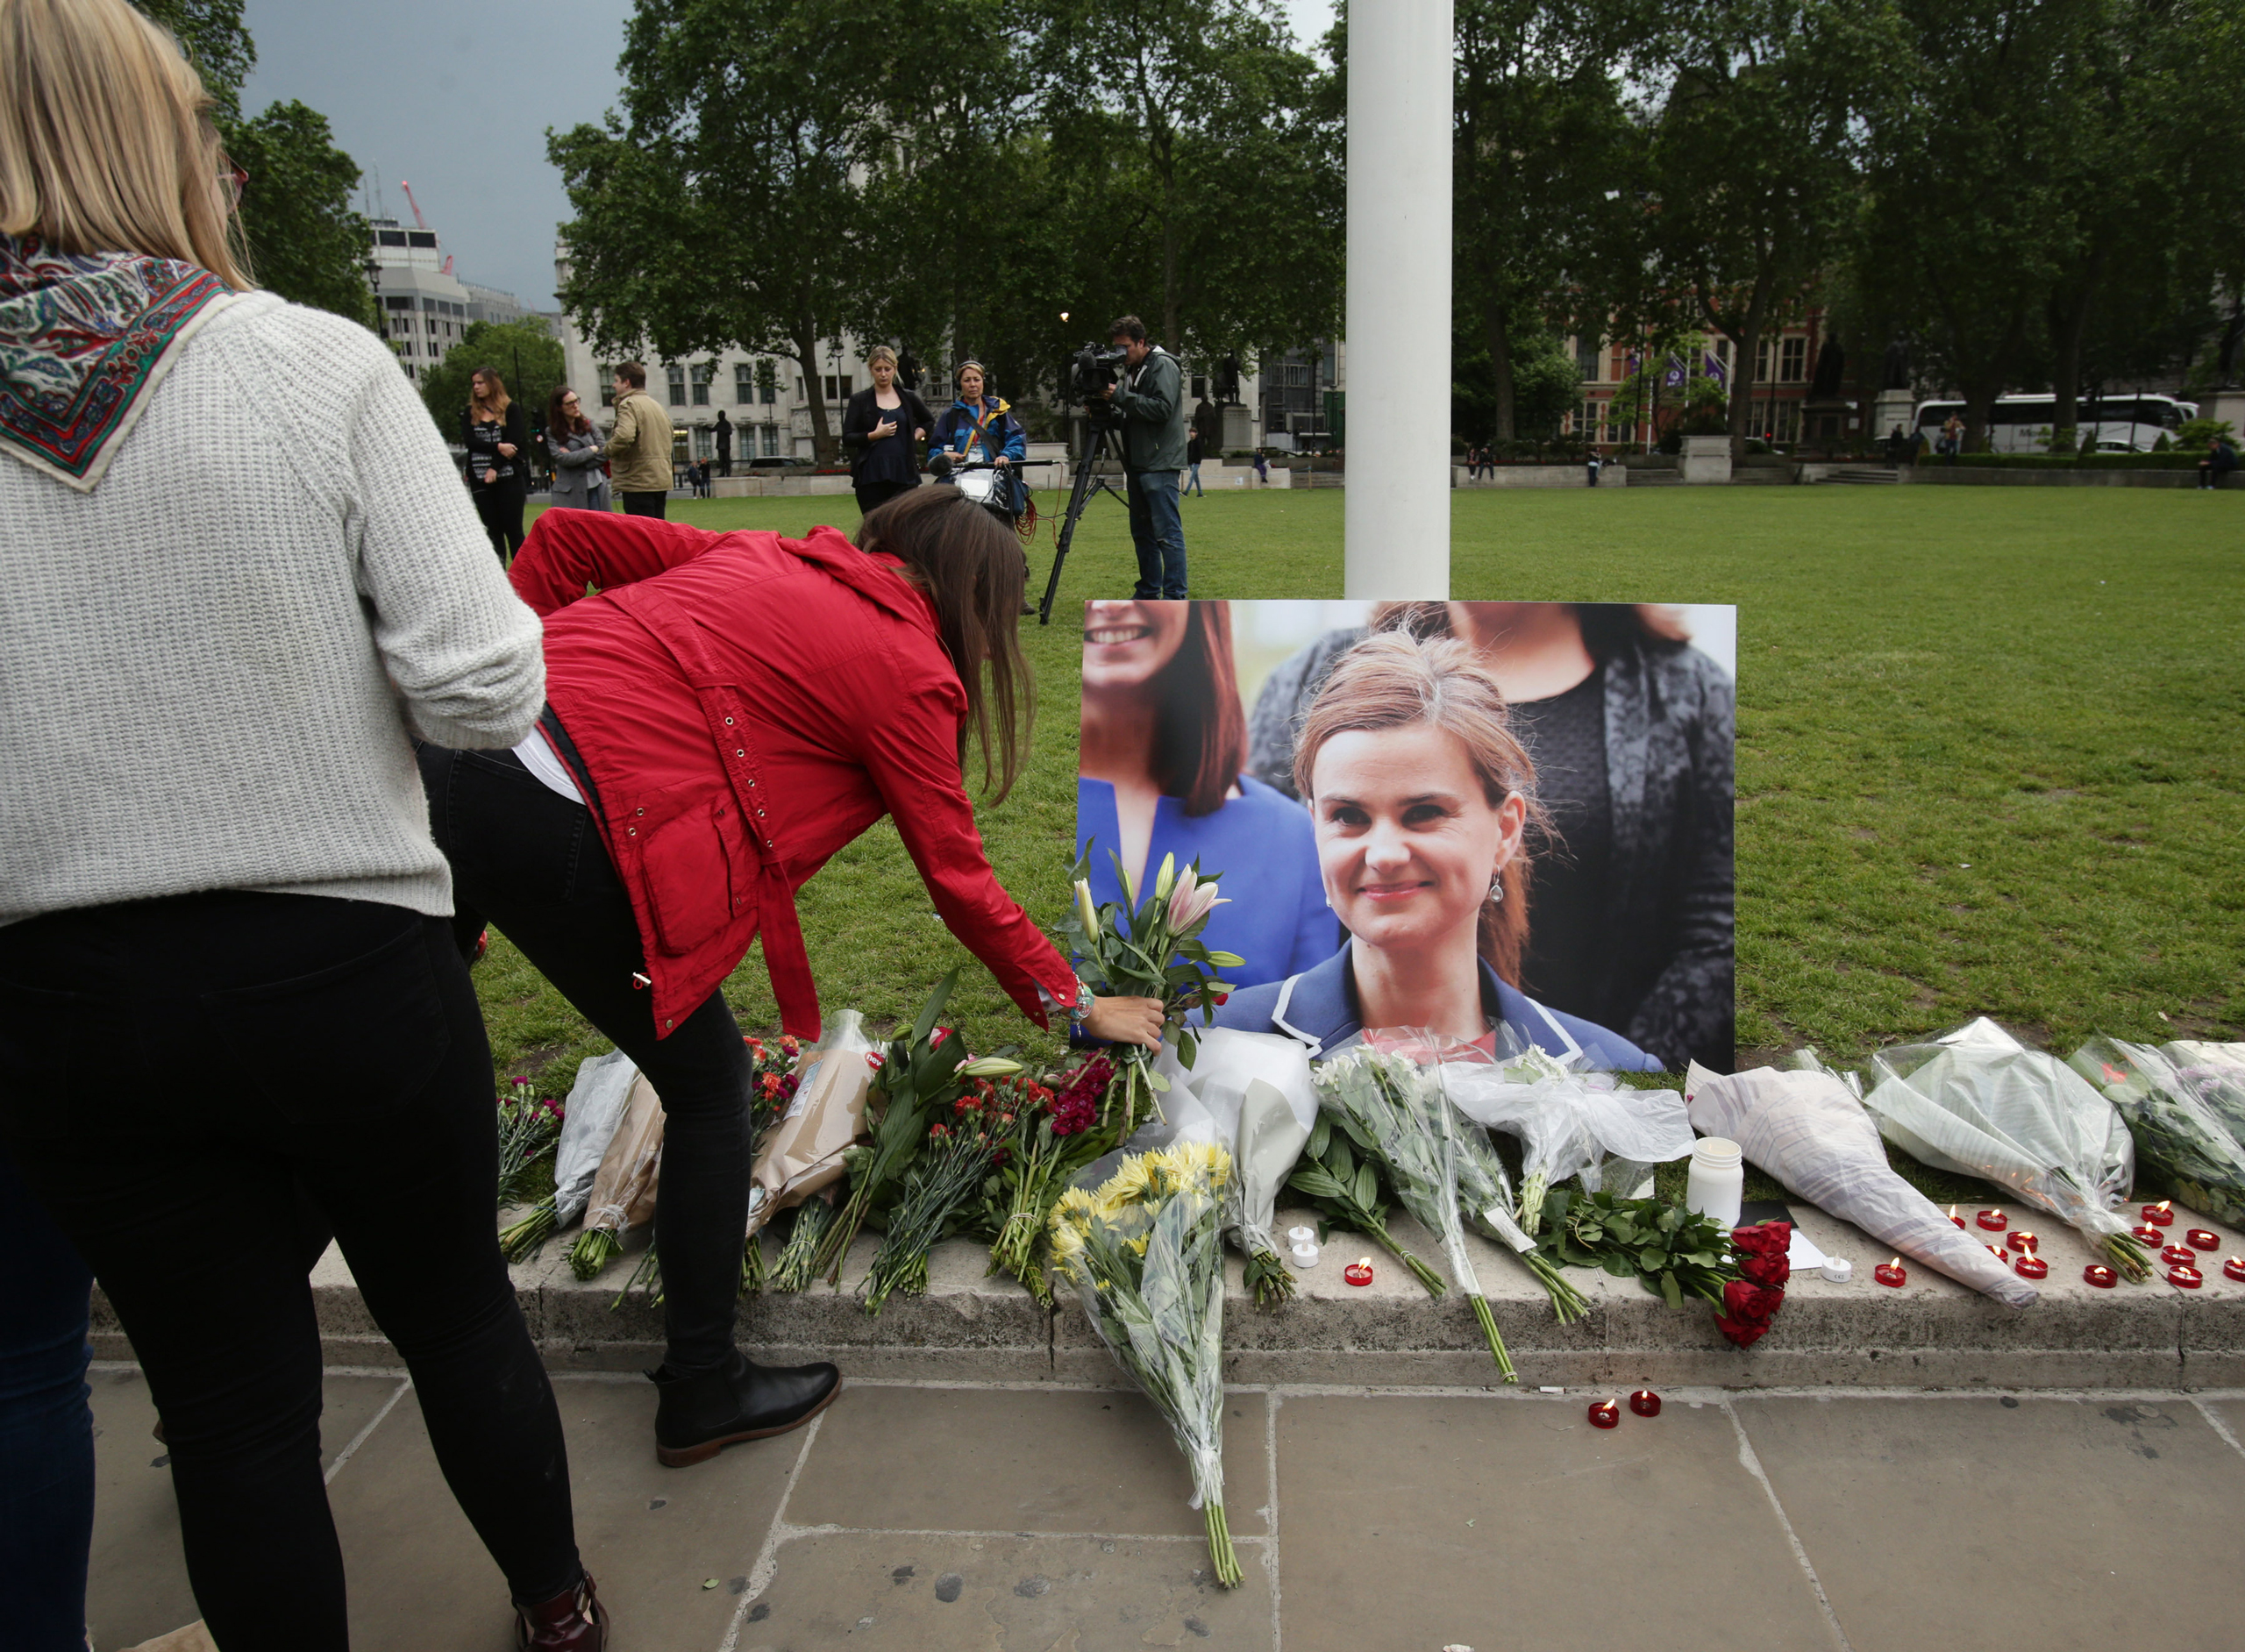 A woman lays some flowers at Parliament Square opposite the Palace of Westminster, central London, in tribute to Labour MP Jo Cox, who died after being shot and stabbed in the street outside her constituency advice surgery in Birstall, England, on June 16, 2016.